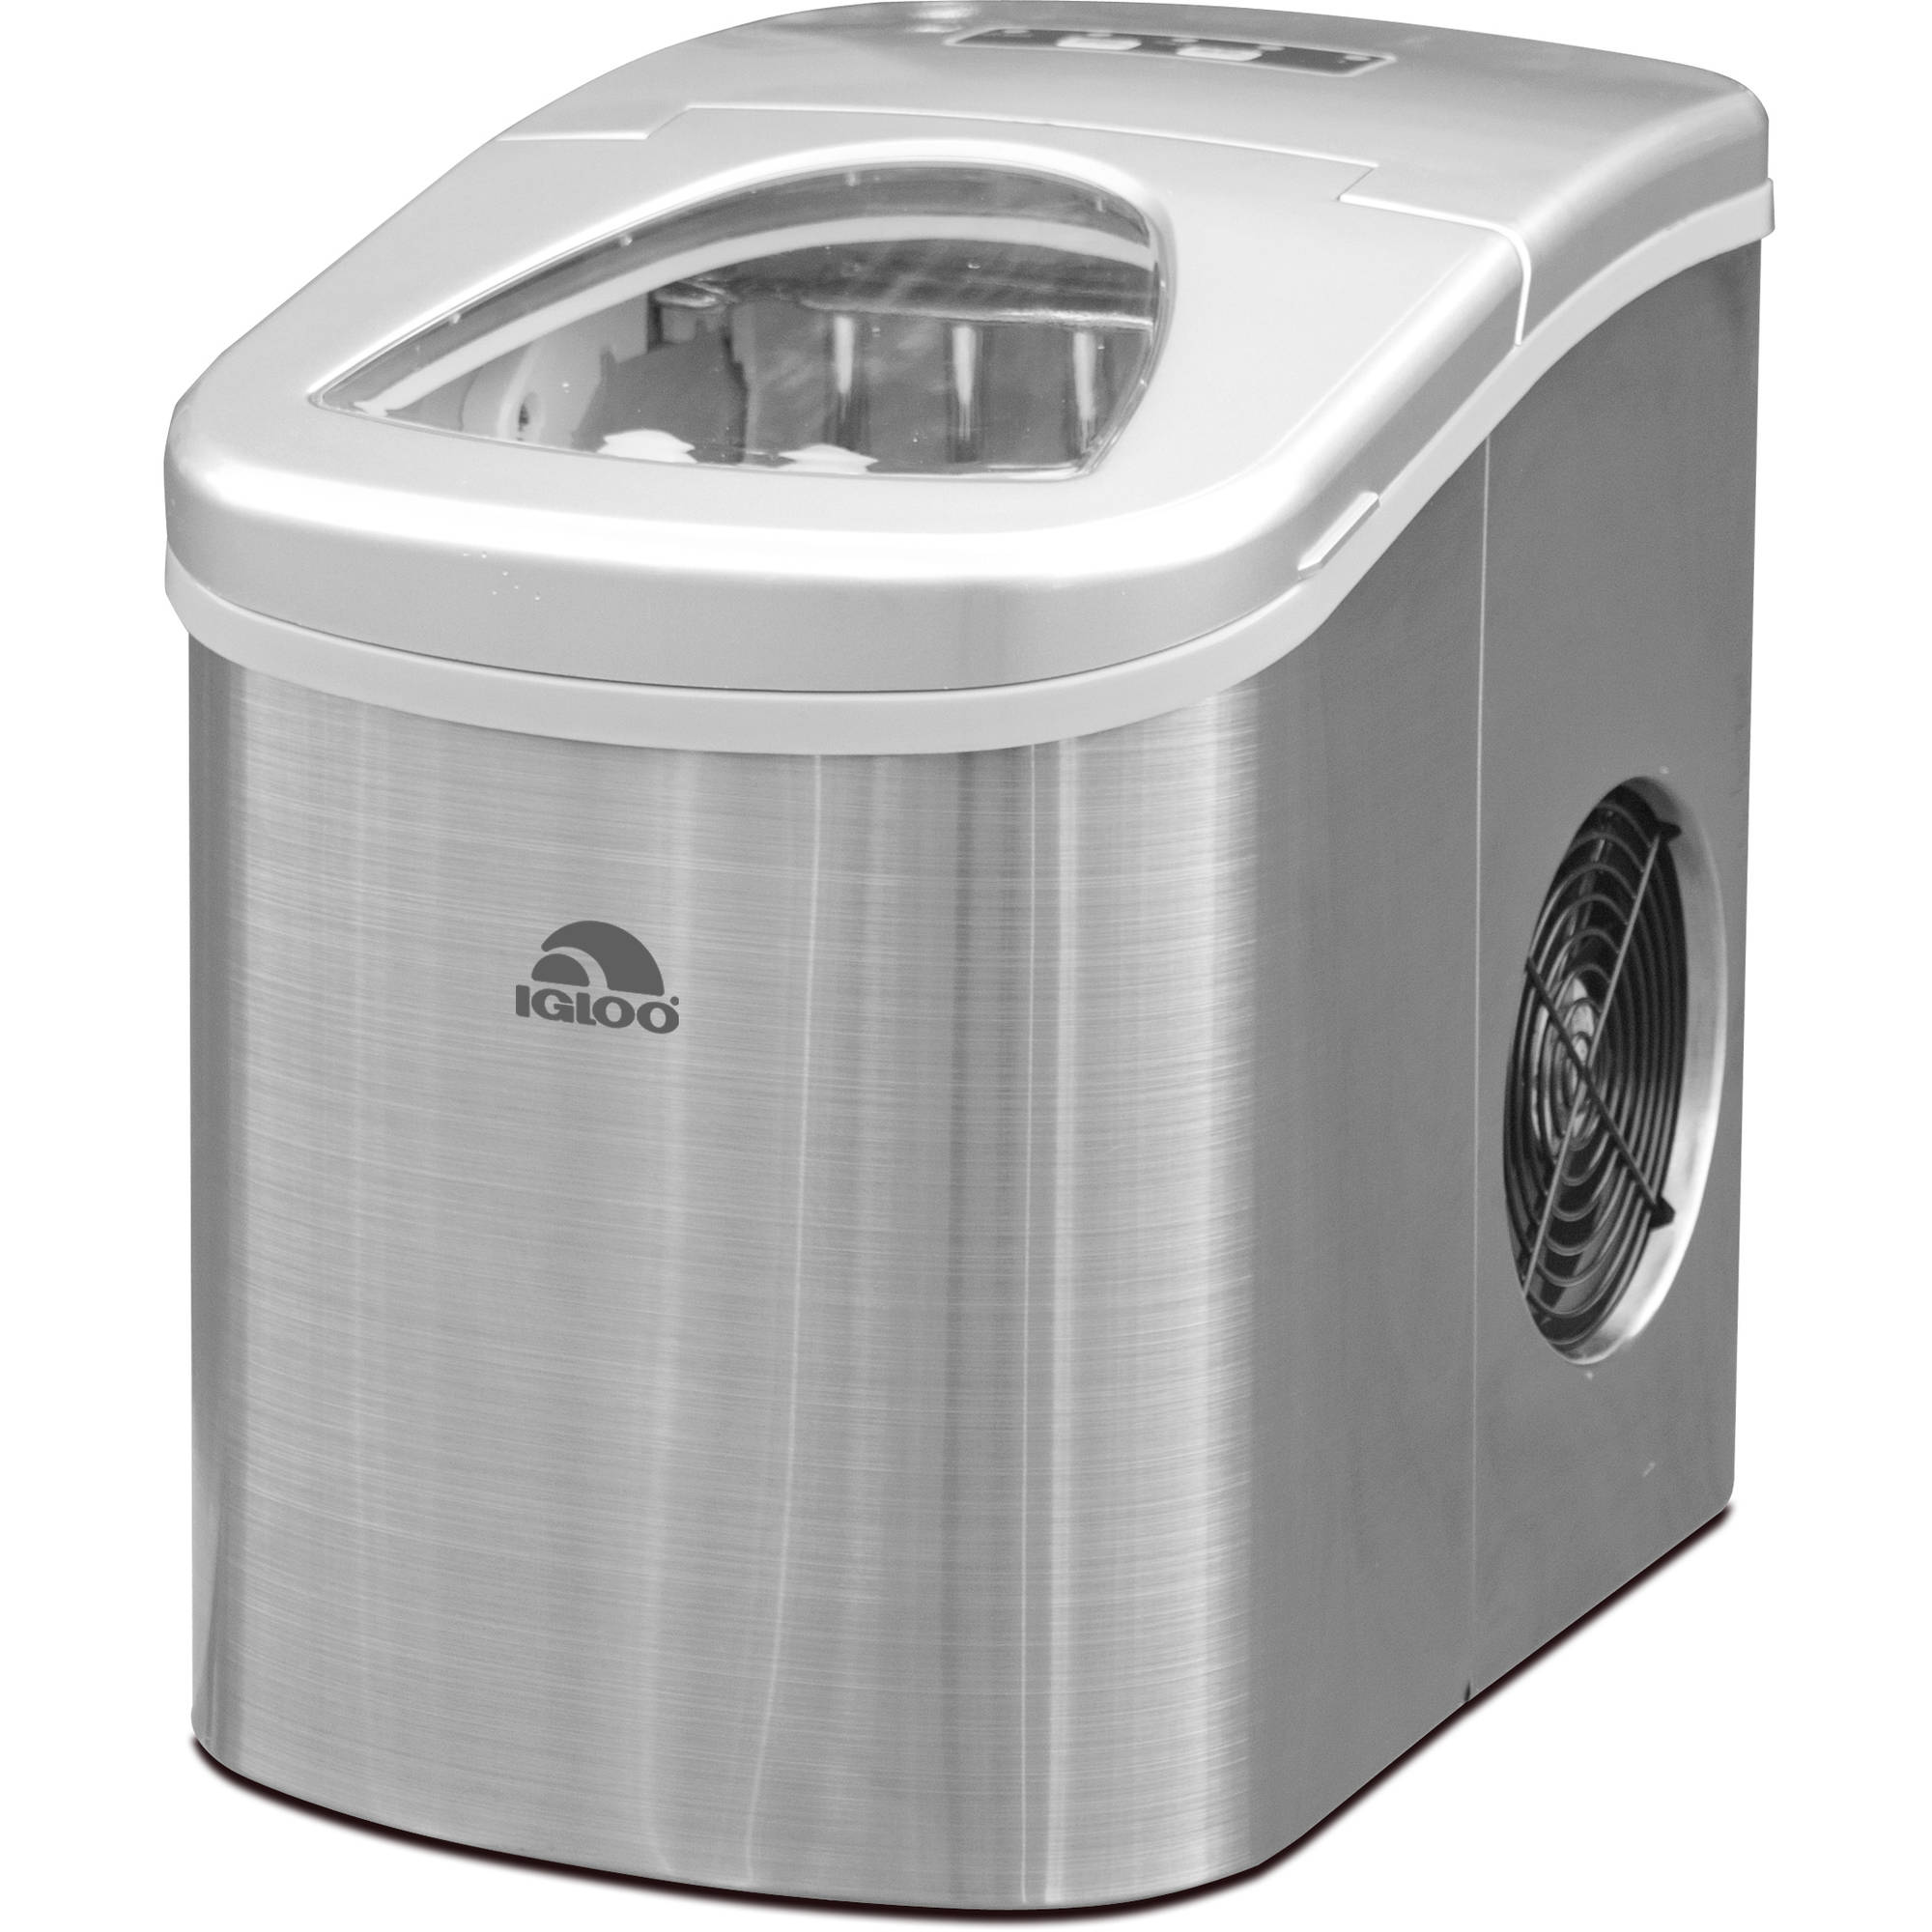 Igloo Compact Ice Maker - ICE117 Stainless Steel (Certified Refurbished)